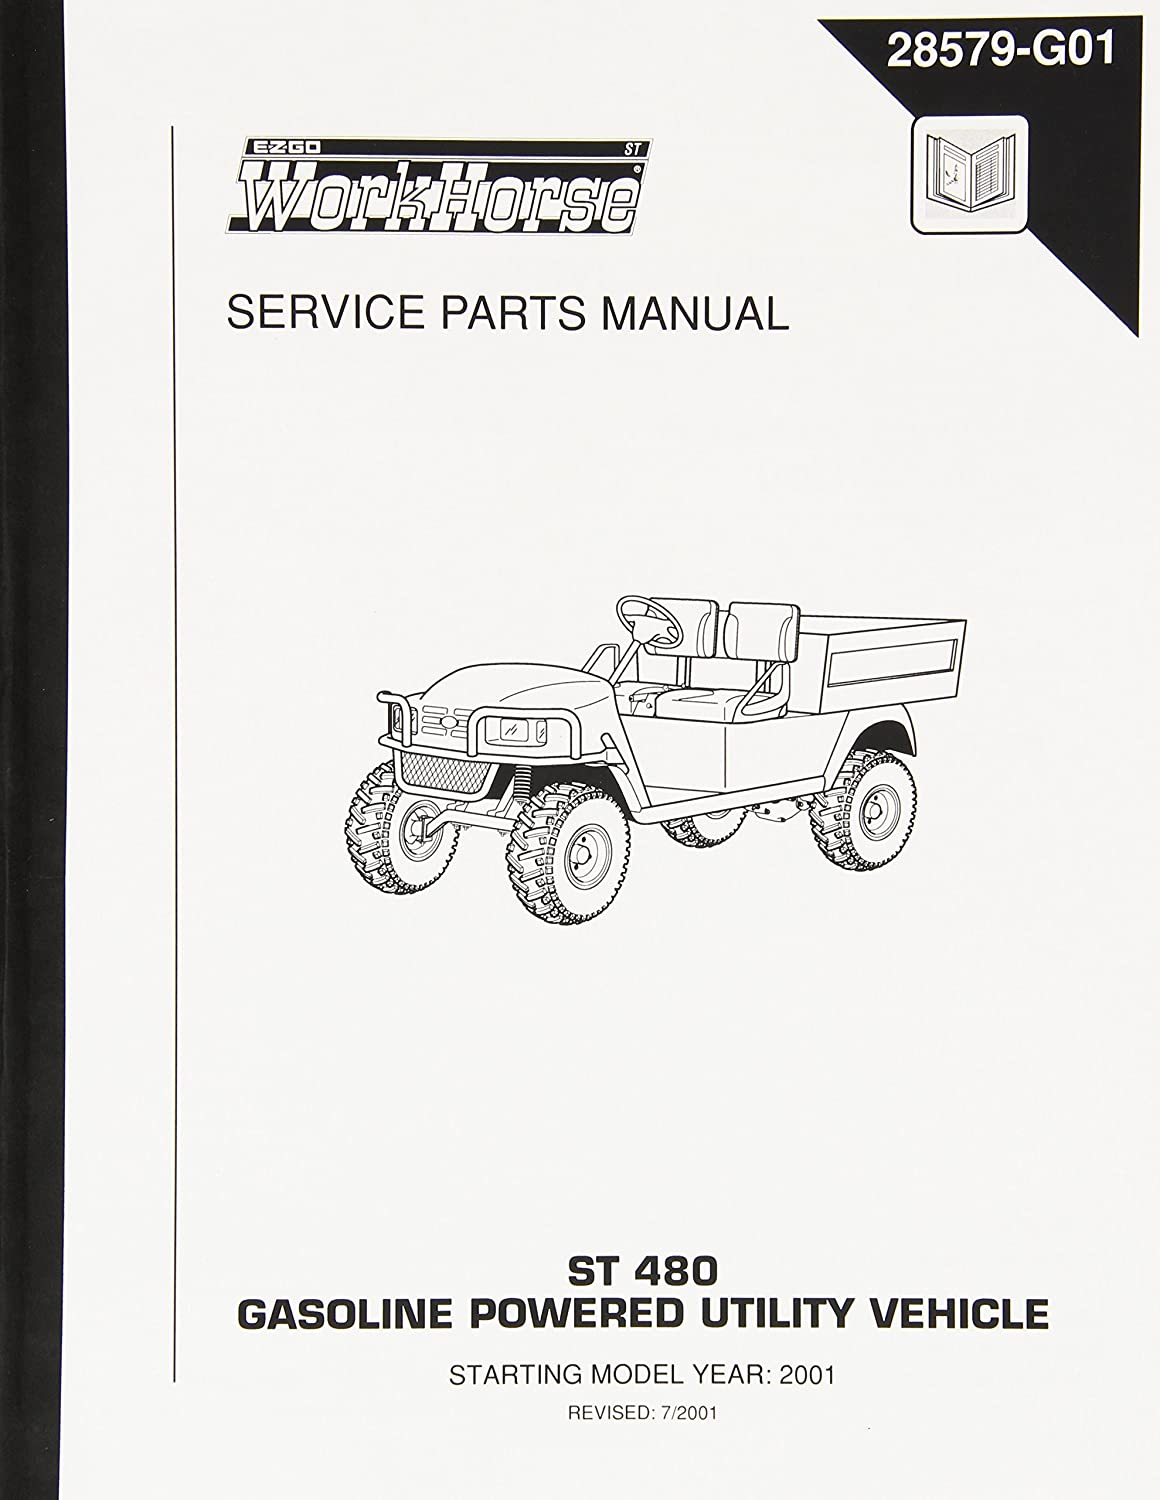 480 Wiring Diagram Ez Go Workhorse Engine Schematic Diagrams 2001 Gas Ezgo Manual User Guide That Easy To Read U2022 Charger